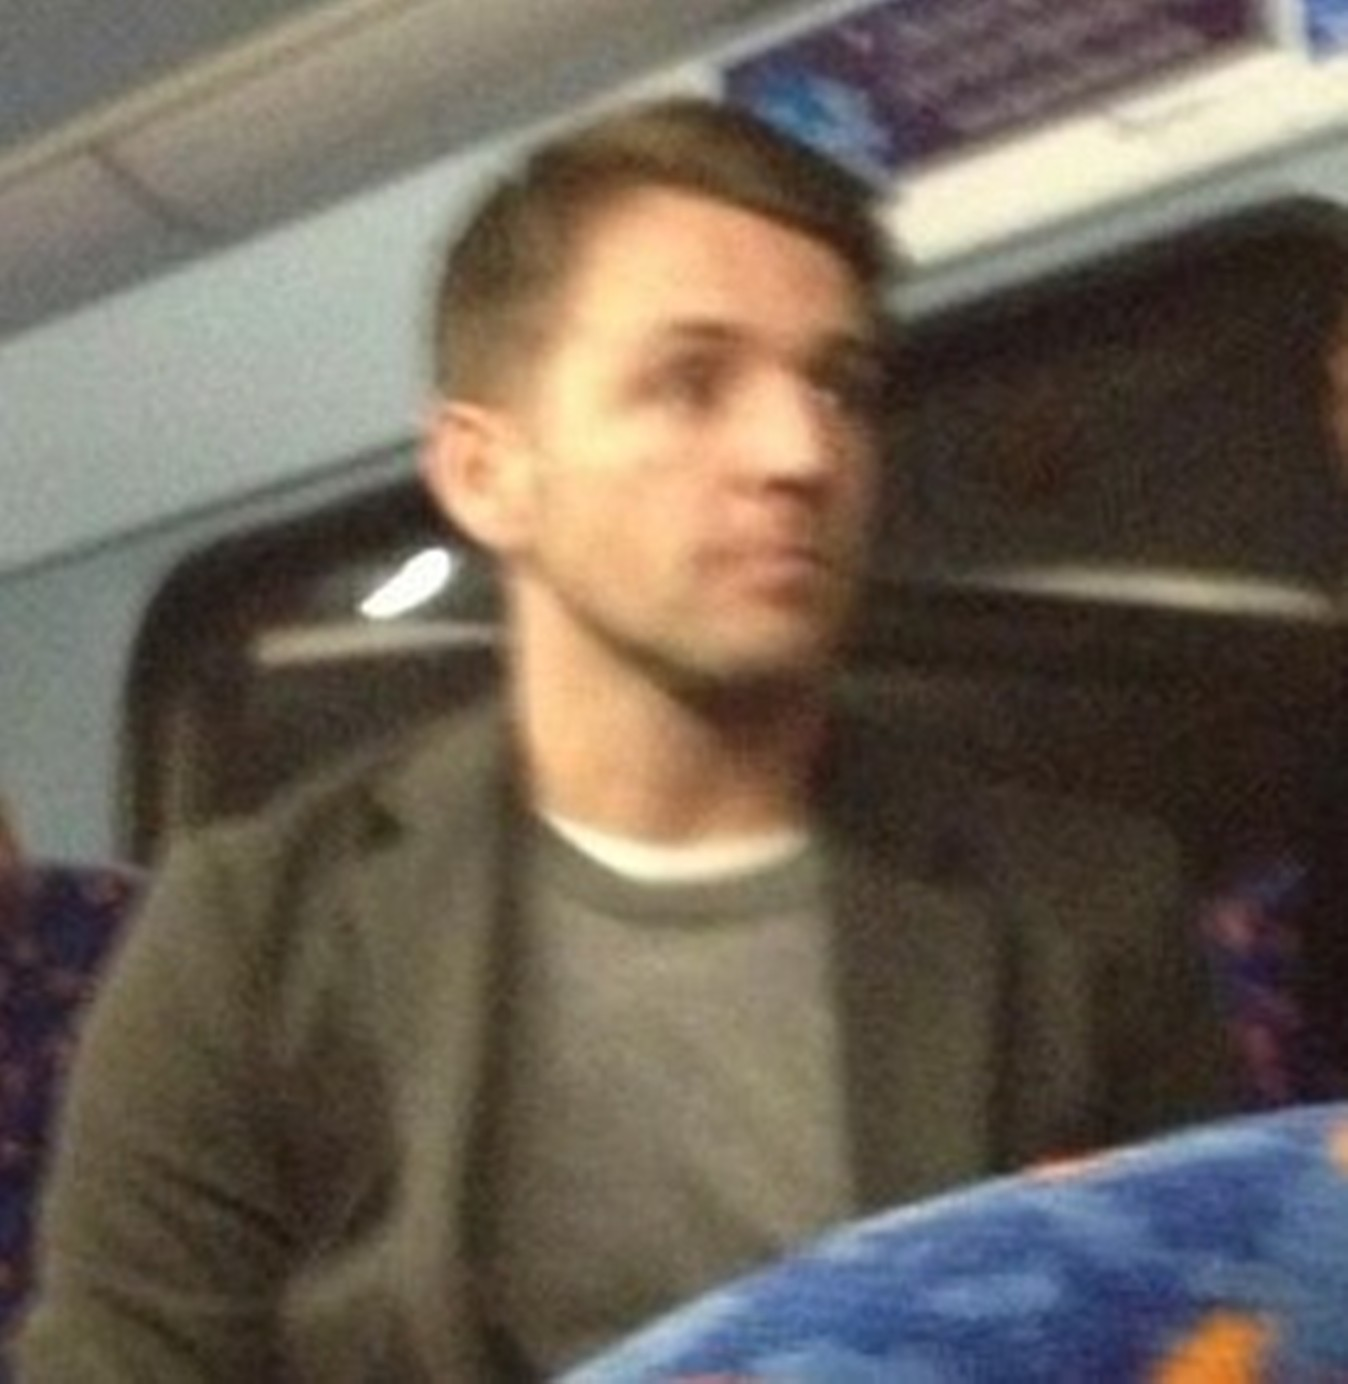 PICTURE: Police seeking this man after racist incident on Shoreham-bound bus